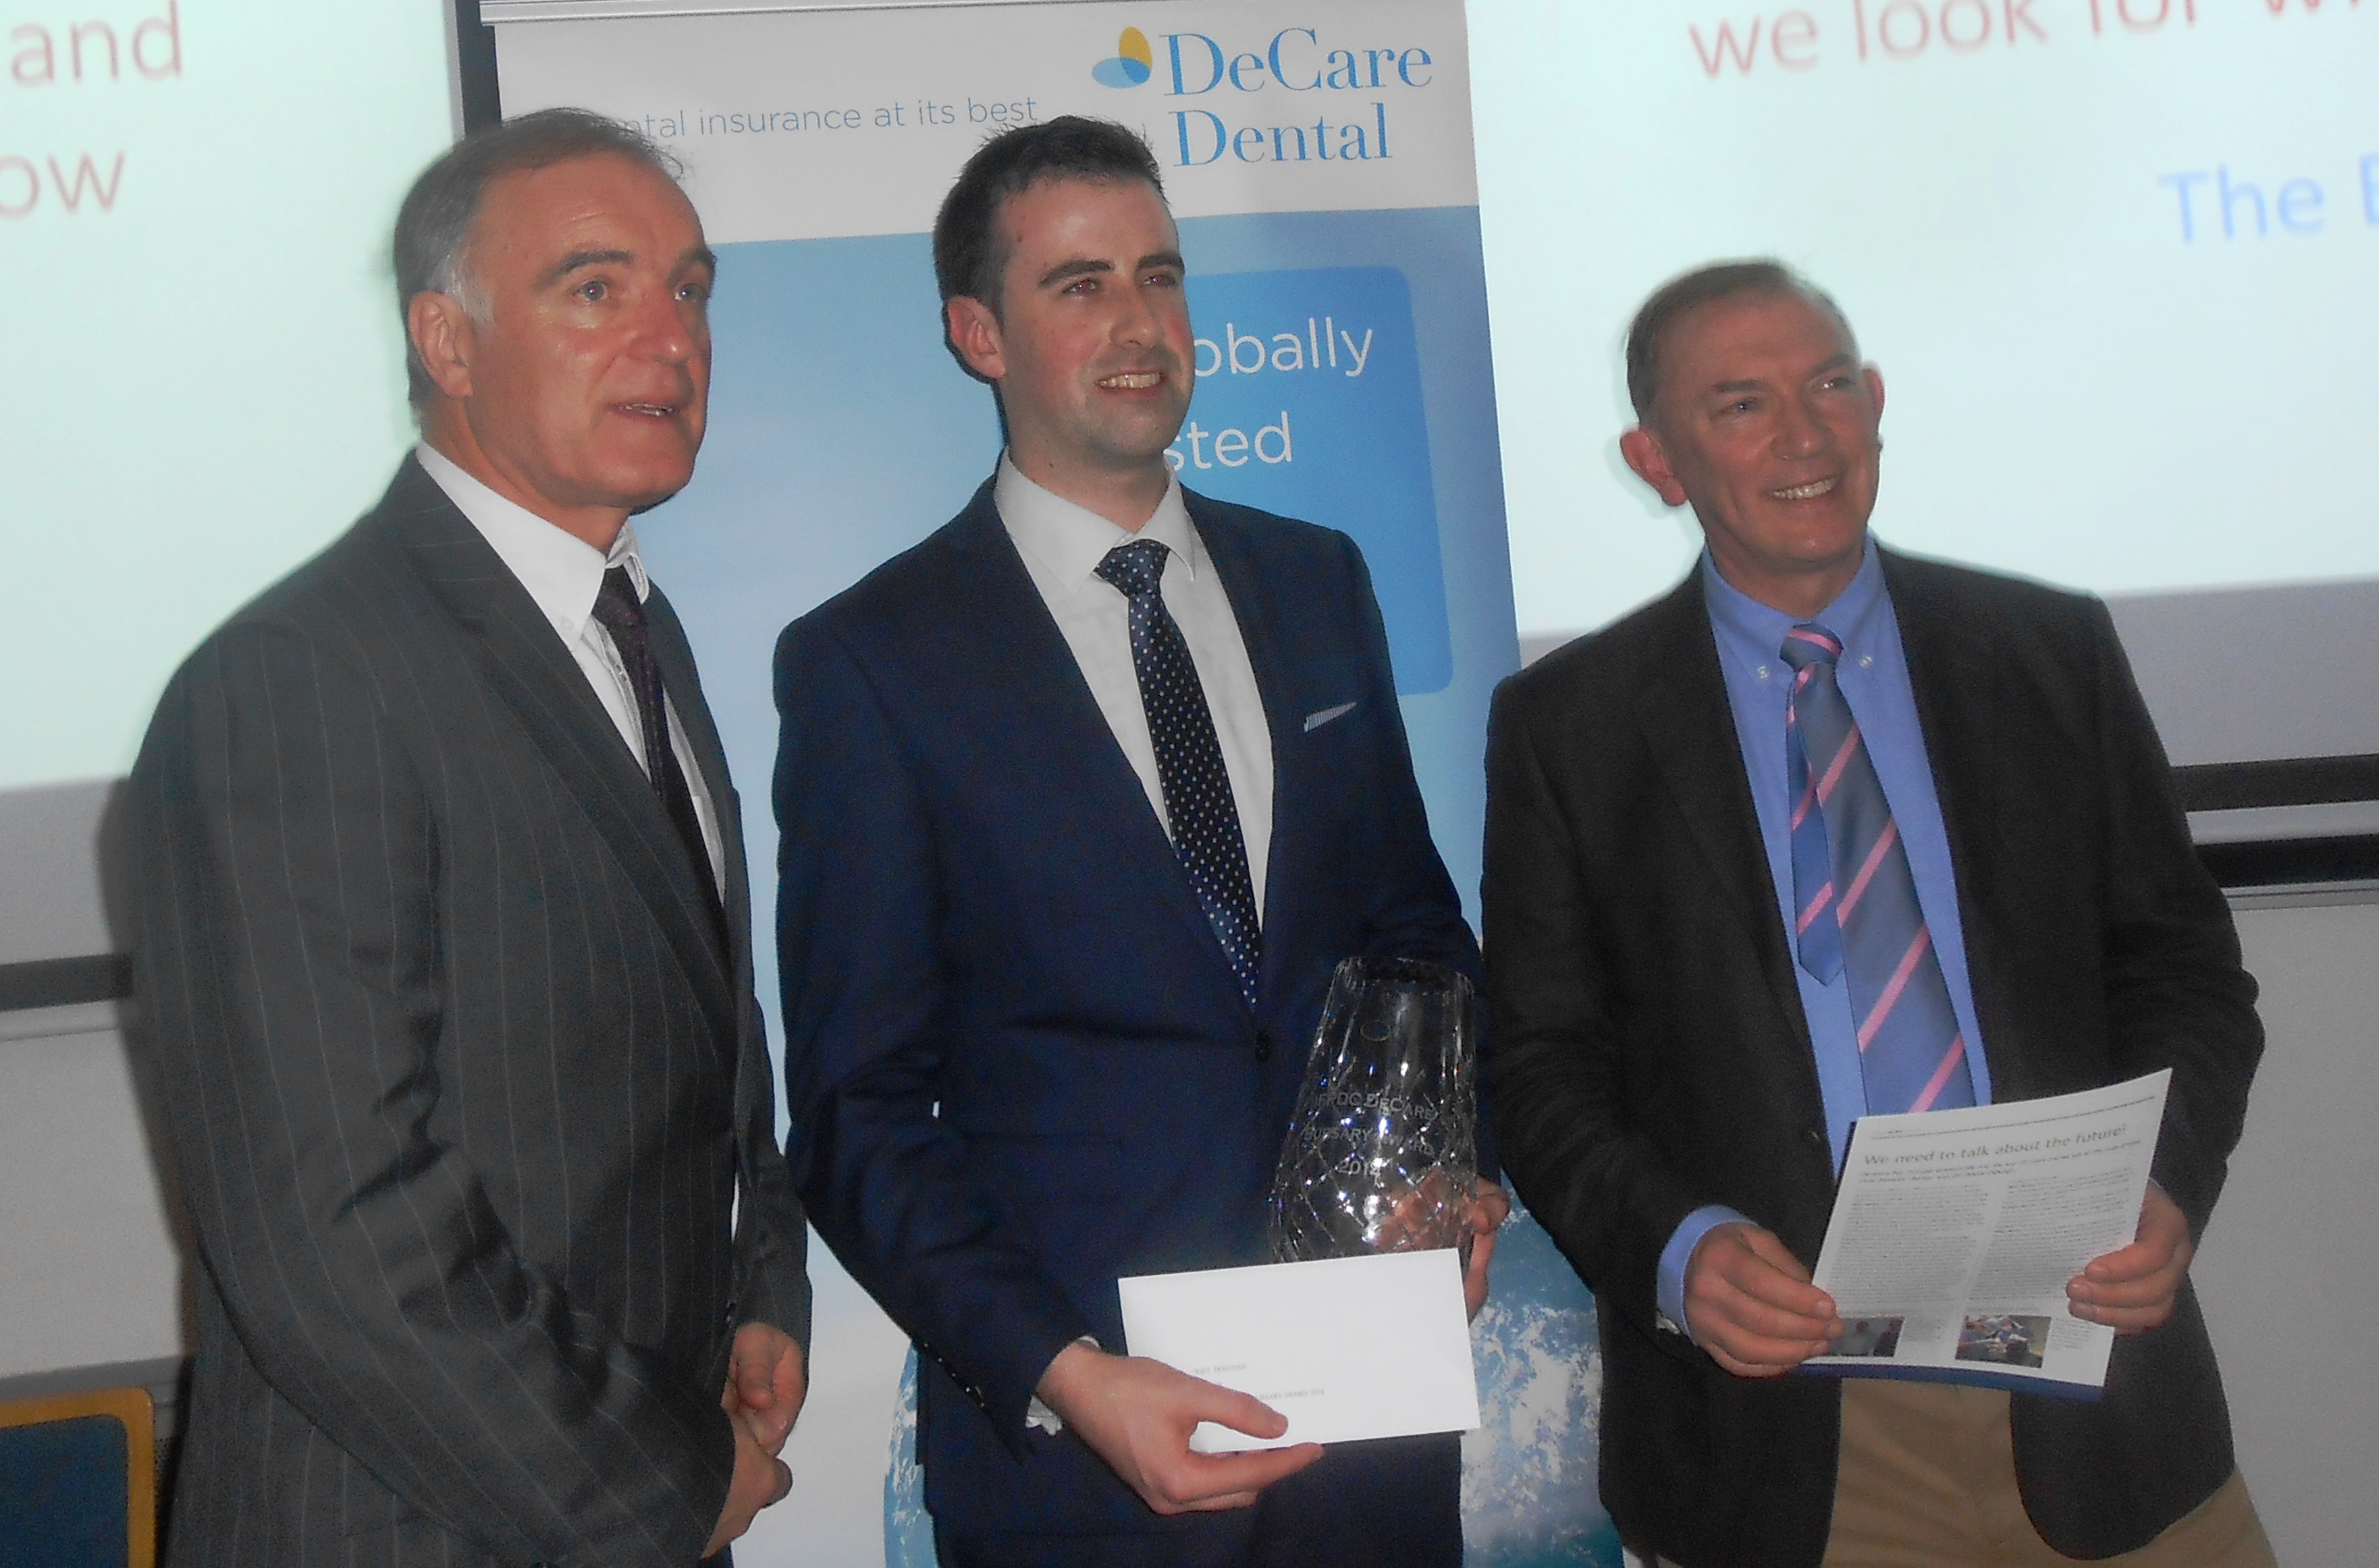 Joey Dovovan was awarded the DeCare